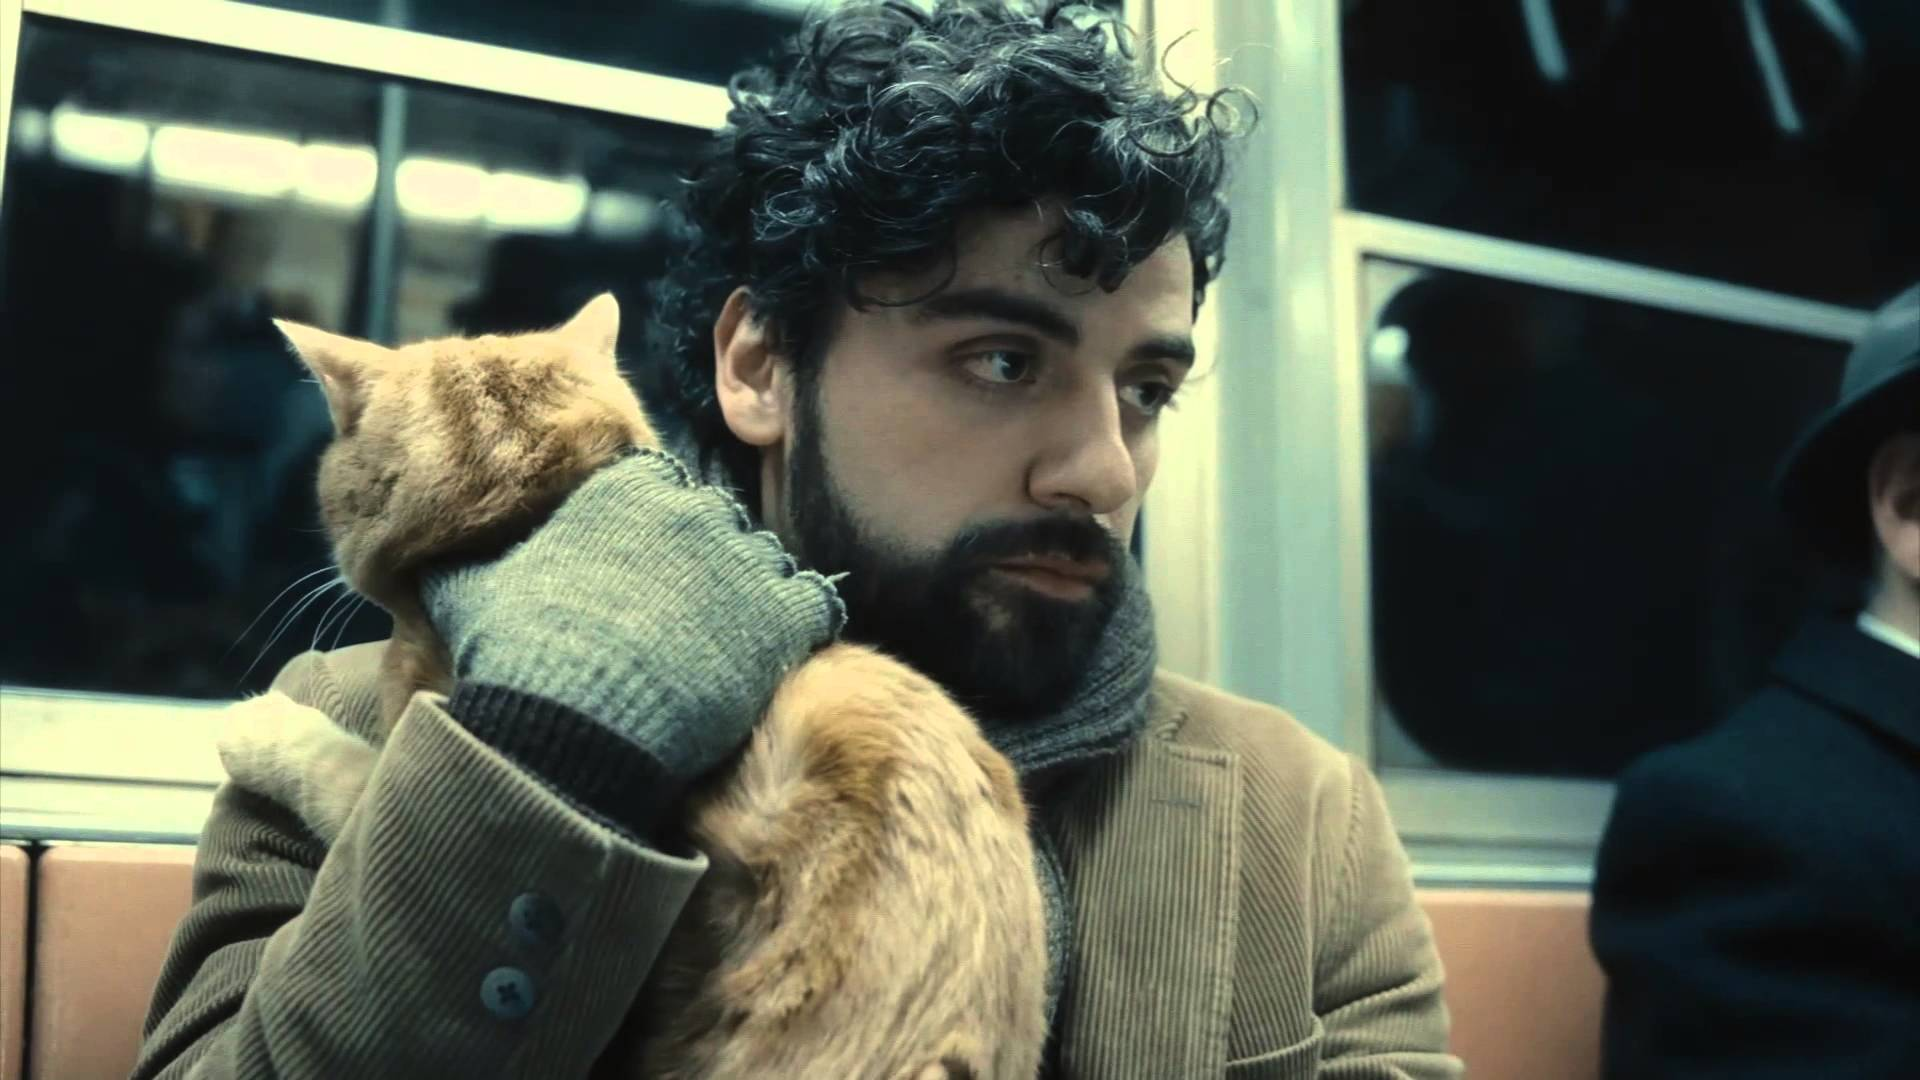 6 Reasons Why Inside Llewyn Davis Is The Coolest Film You'll See Any Time Soon